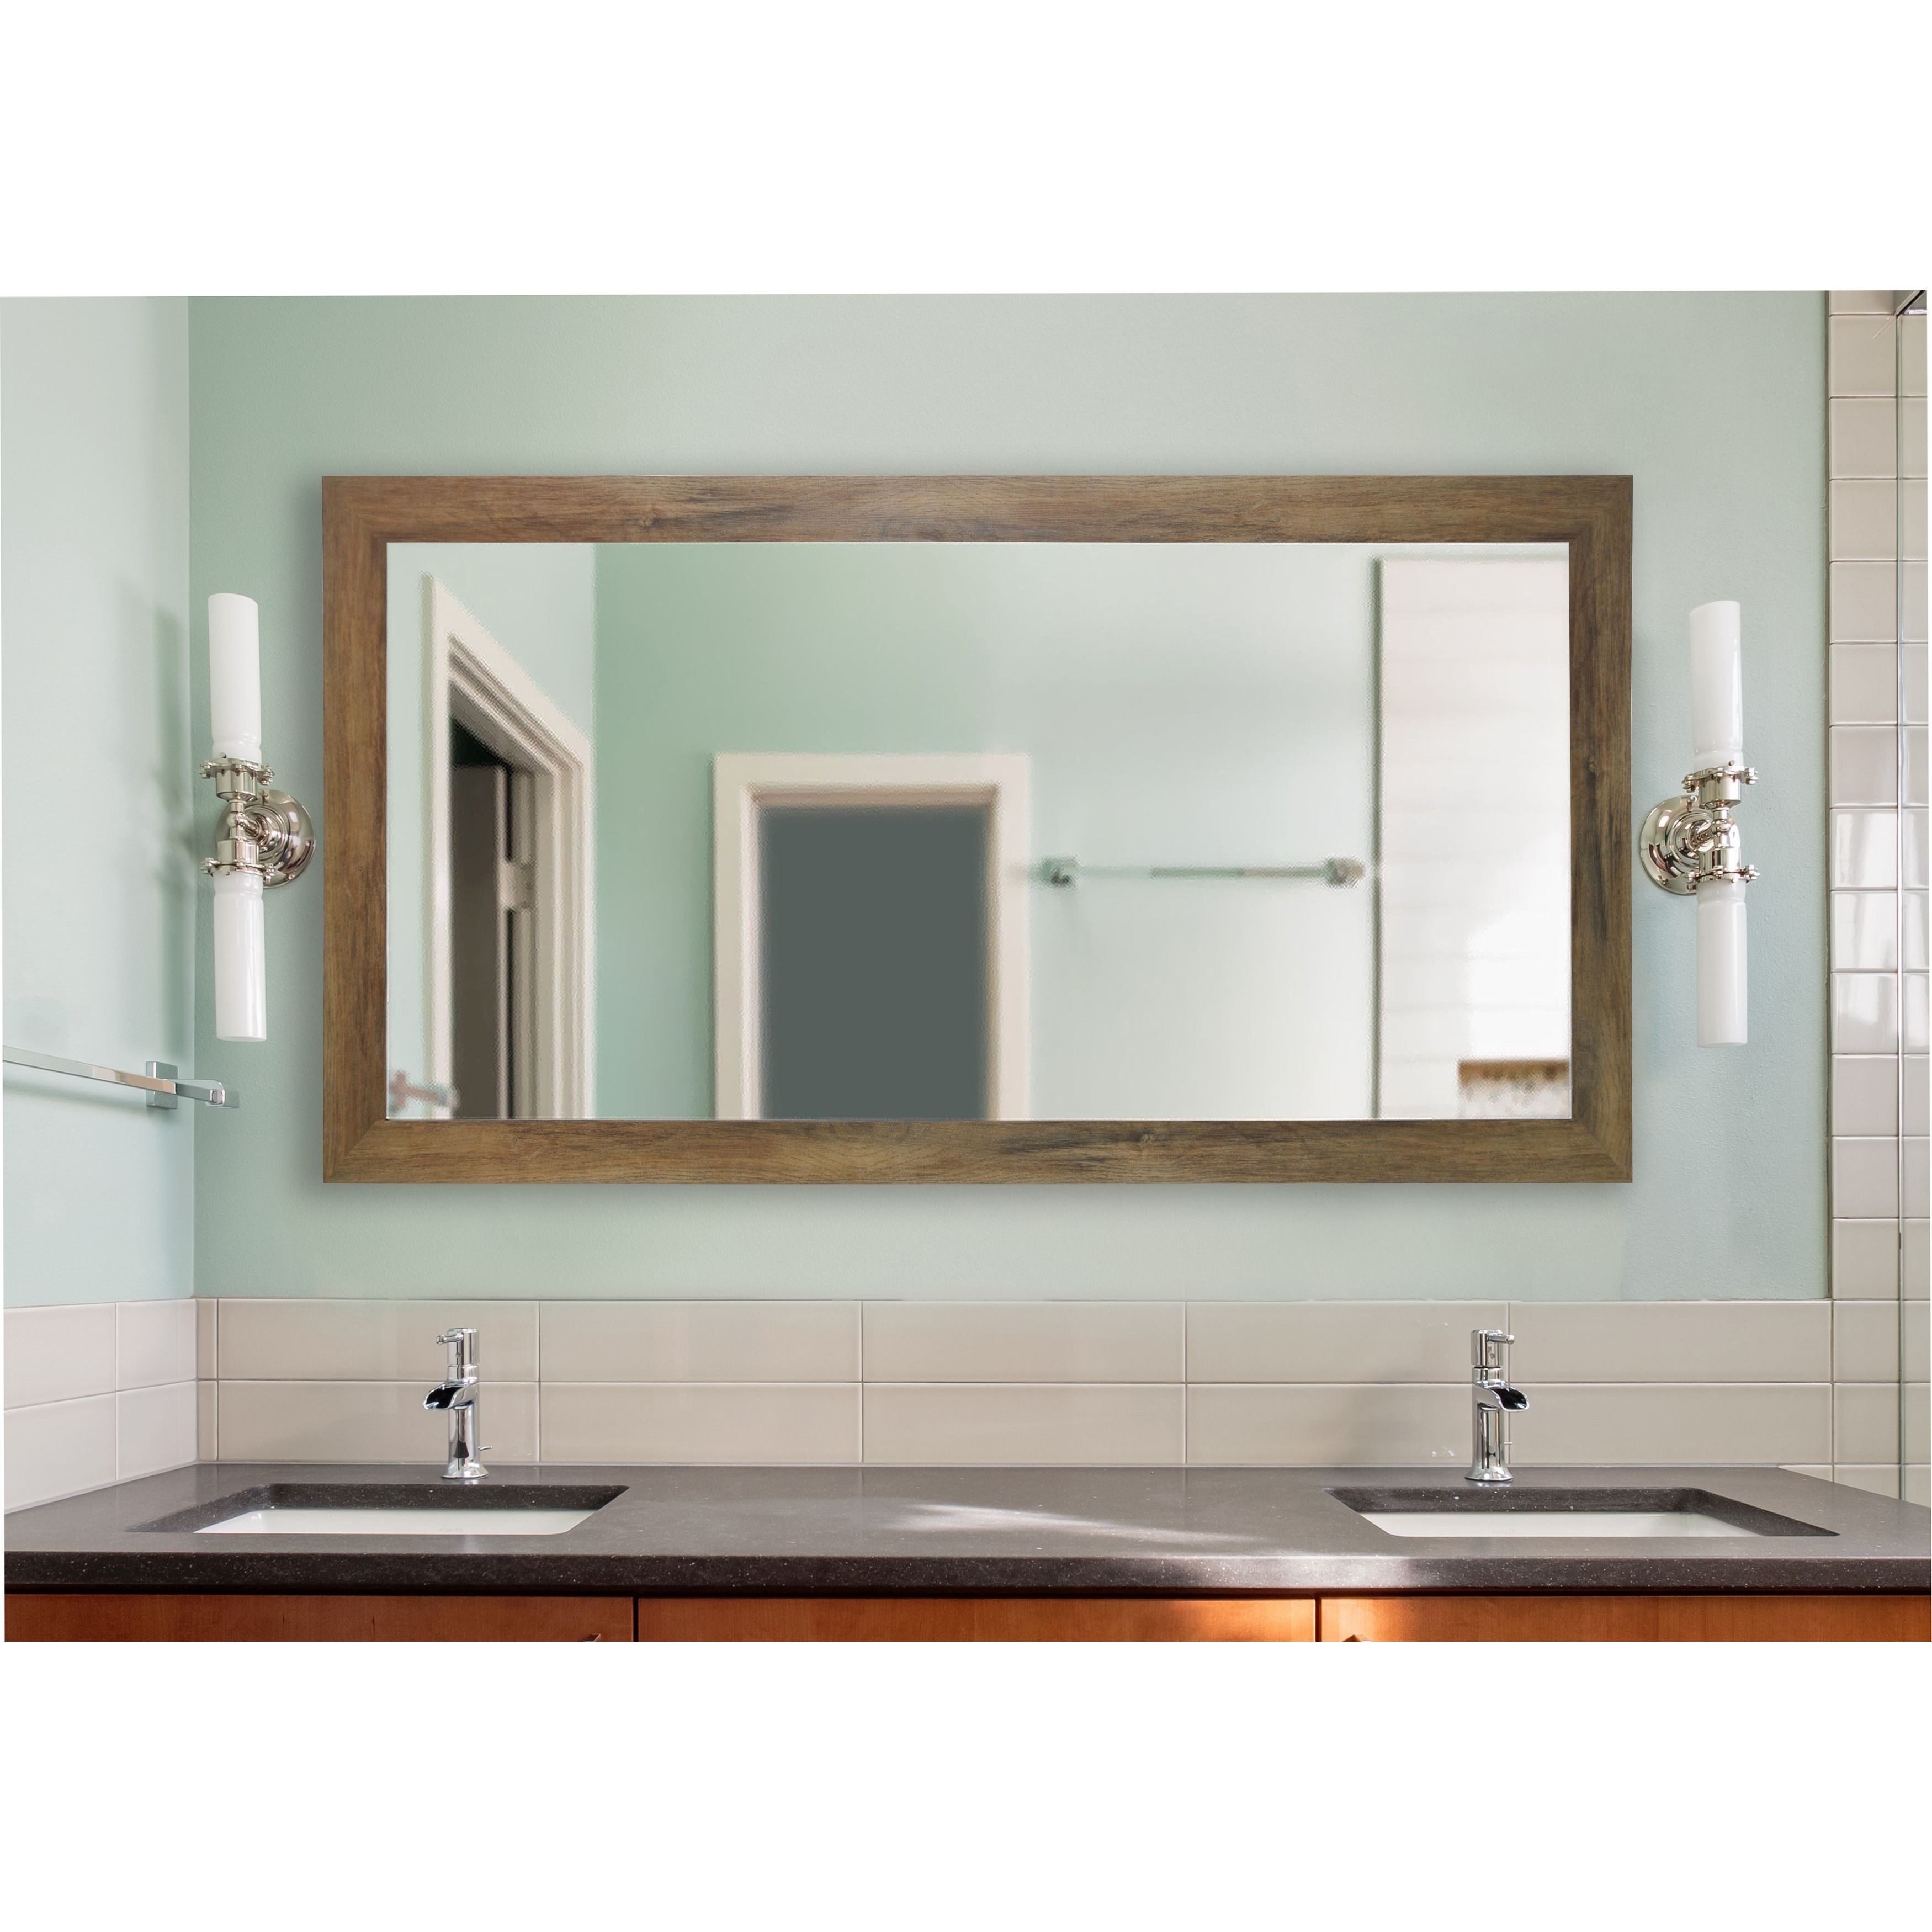 Extra Large Round Silver Wall Mirror